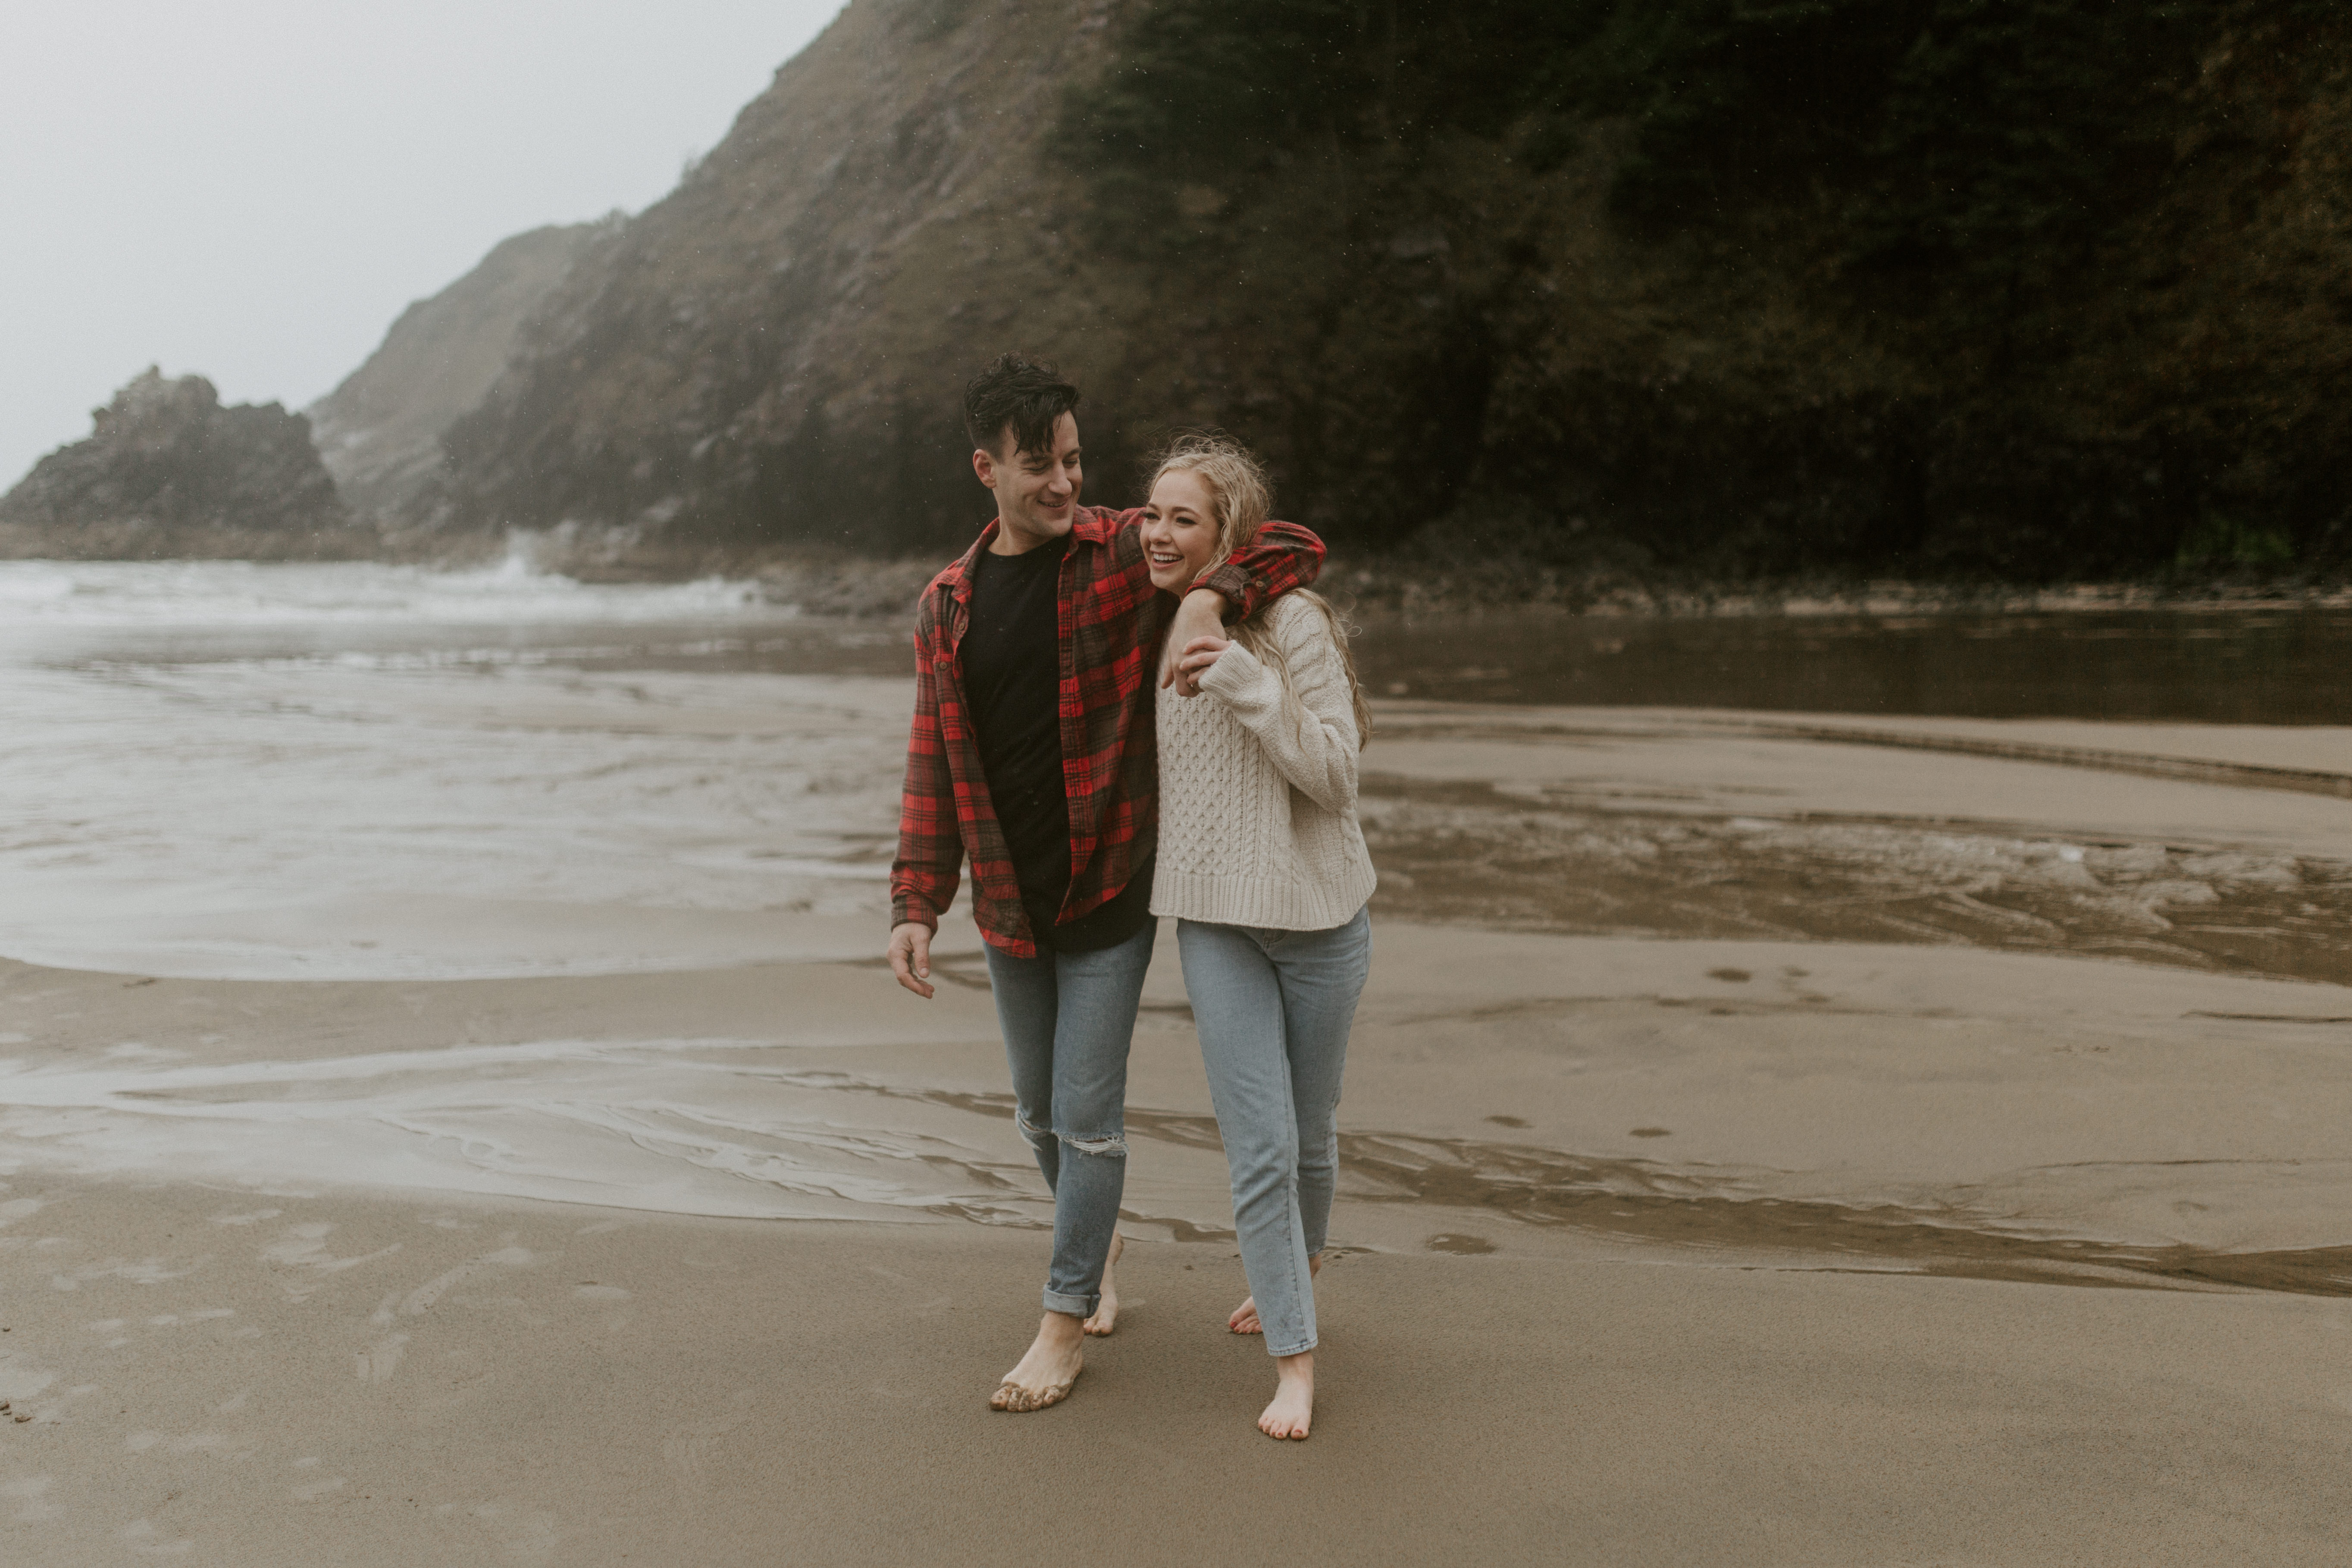 Hannah pulls Grant towards the waves on Indian Beach in Ecola State Park, Oregon. Engagement photography in Oregon by Sienna Plus Josh.